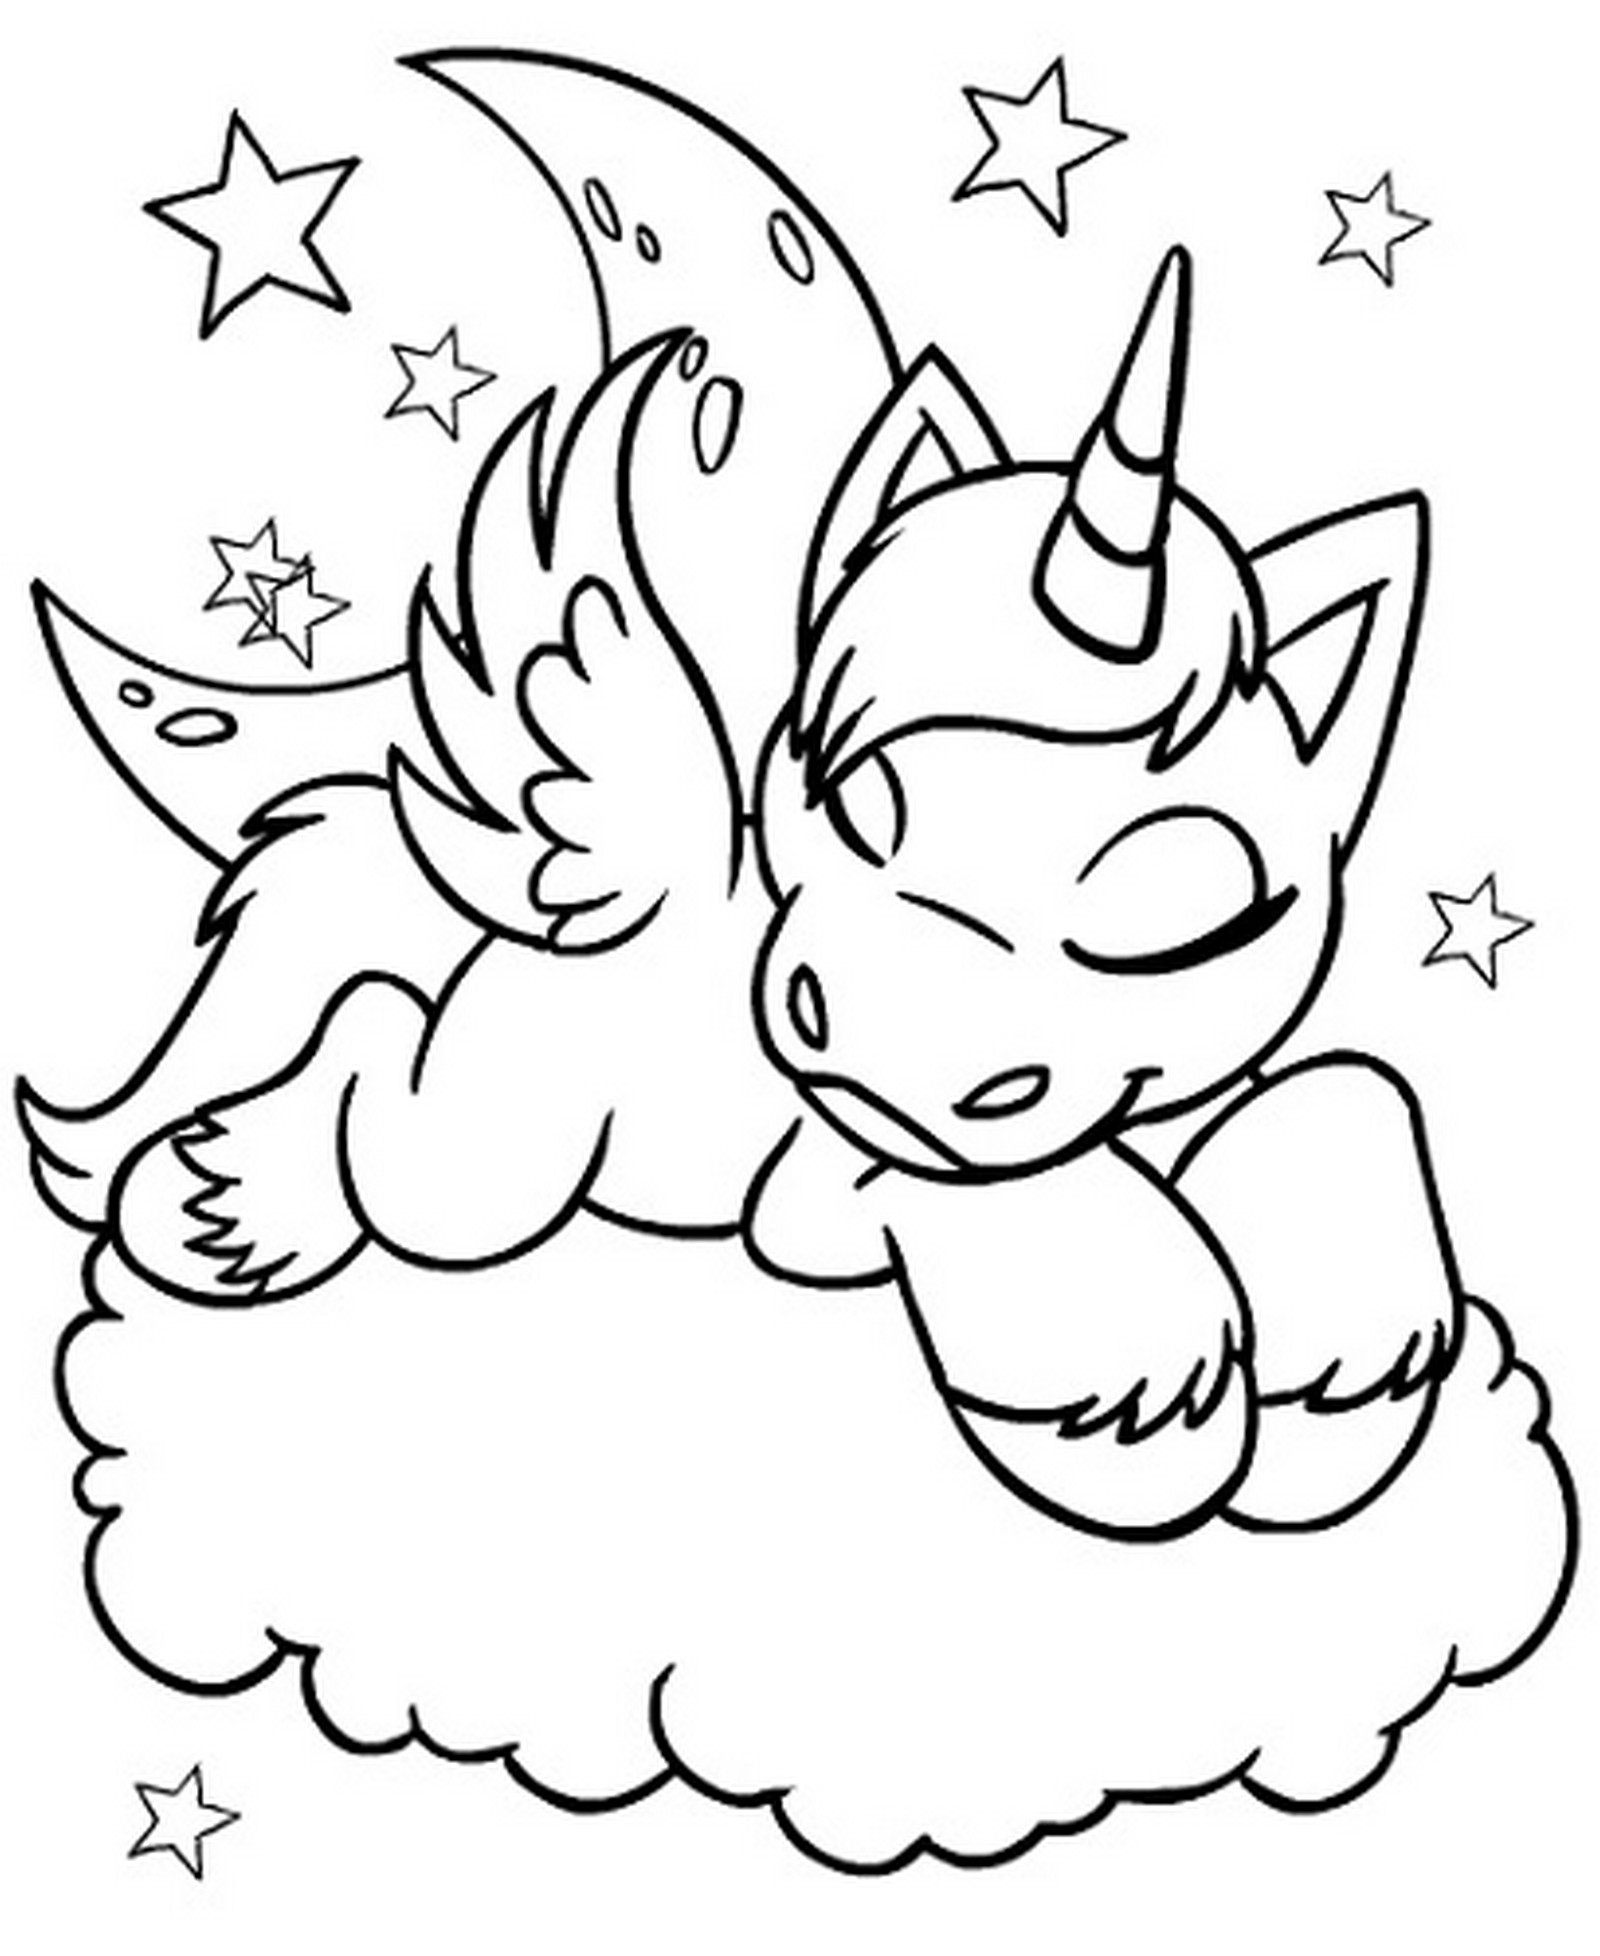 Unicorn Coloring Pages Free Learning Printable